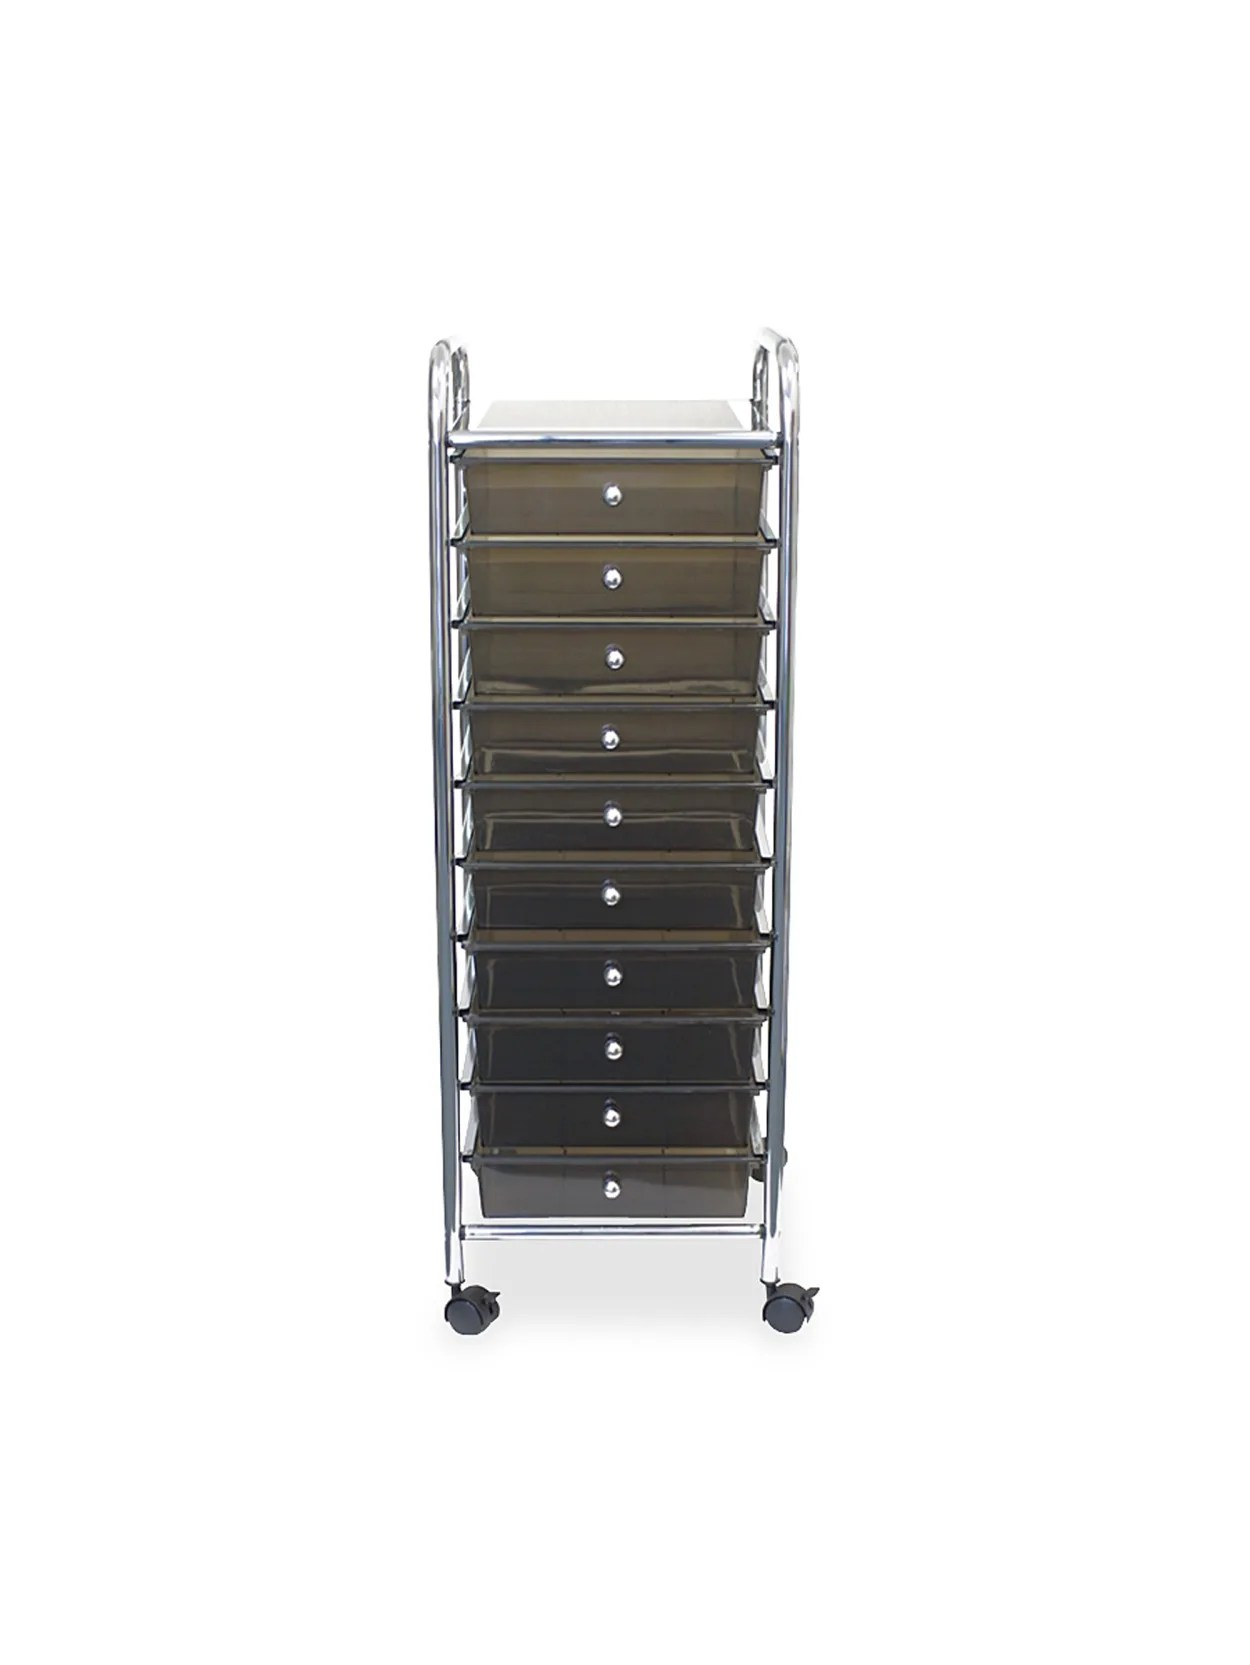 Office Depot 10 Drawer Organizer With Casters 37 12 H X 15 12 W X